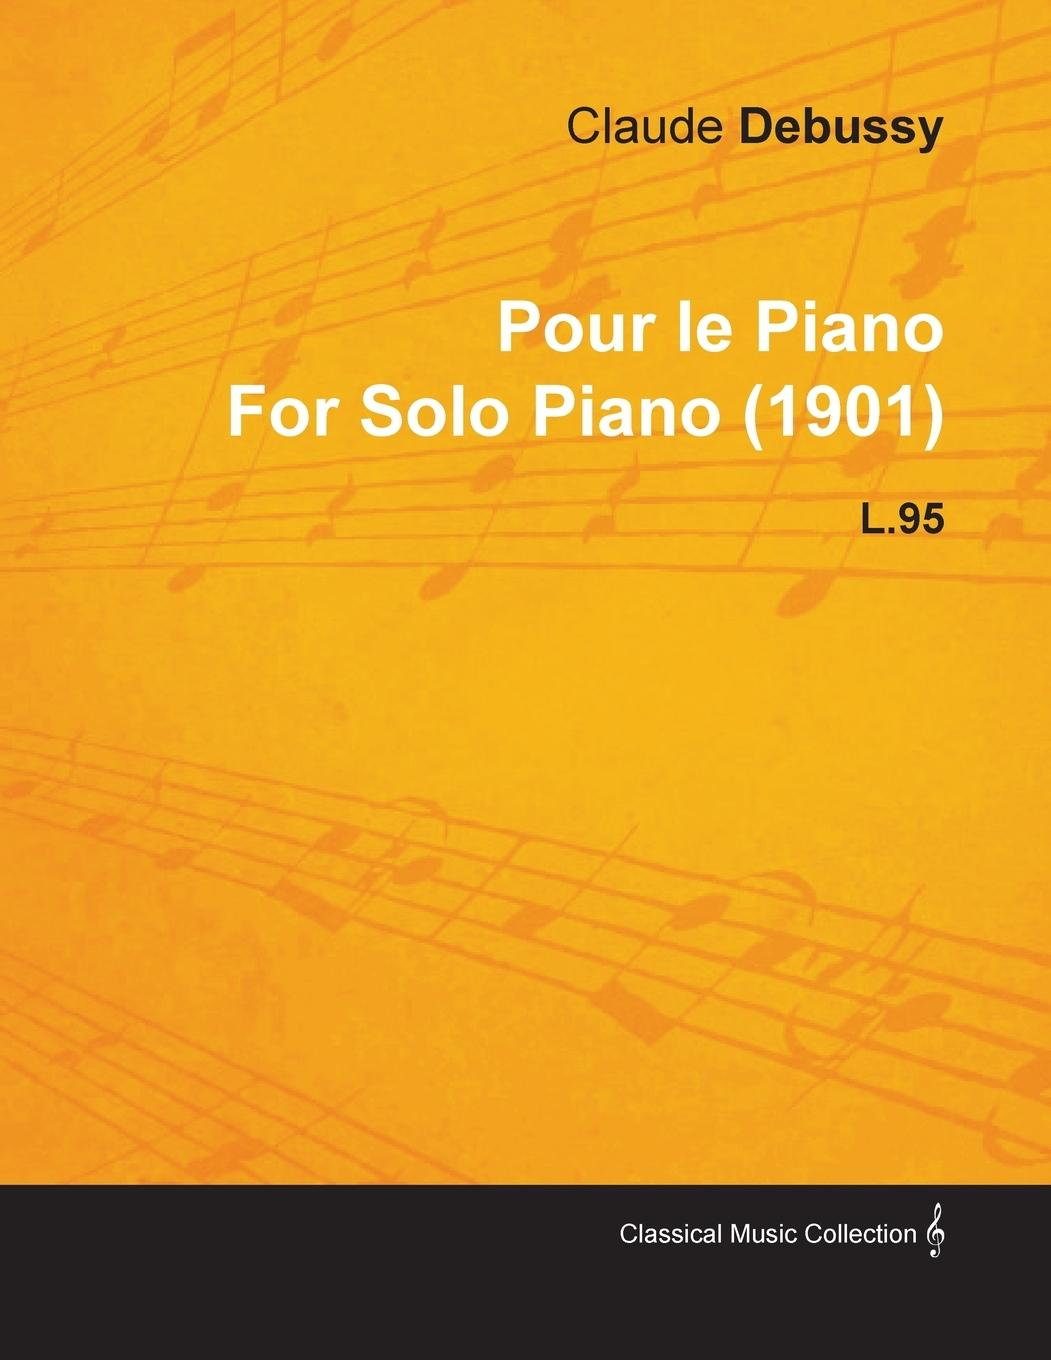 Pour Le Piano by Claude Debussy for Solo Piano (1901) L.95 - Debussy, Claude